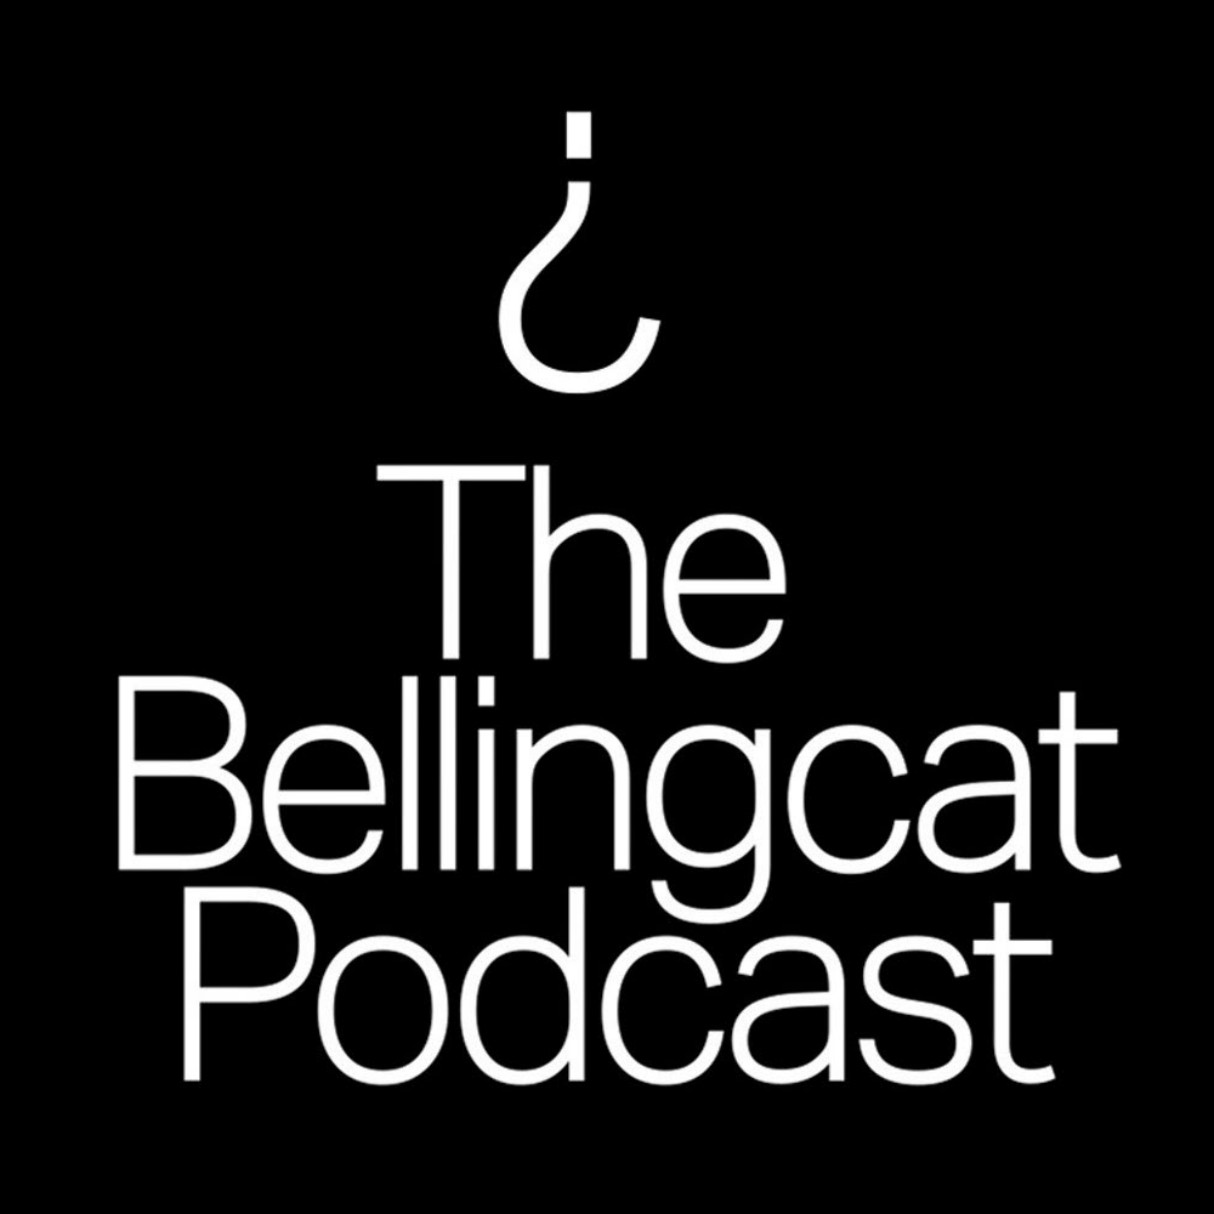 best-podcasts-2019-bellingcat-mh17